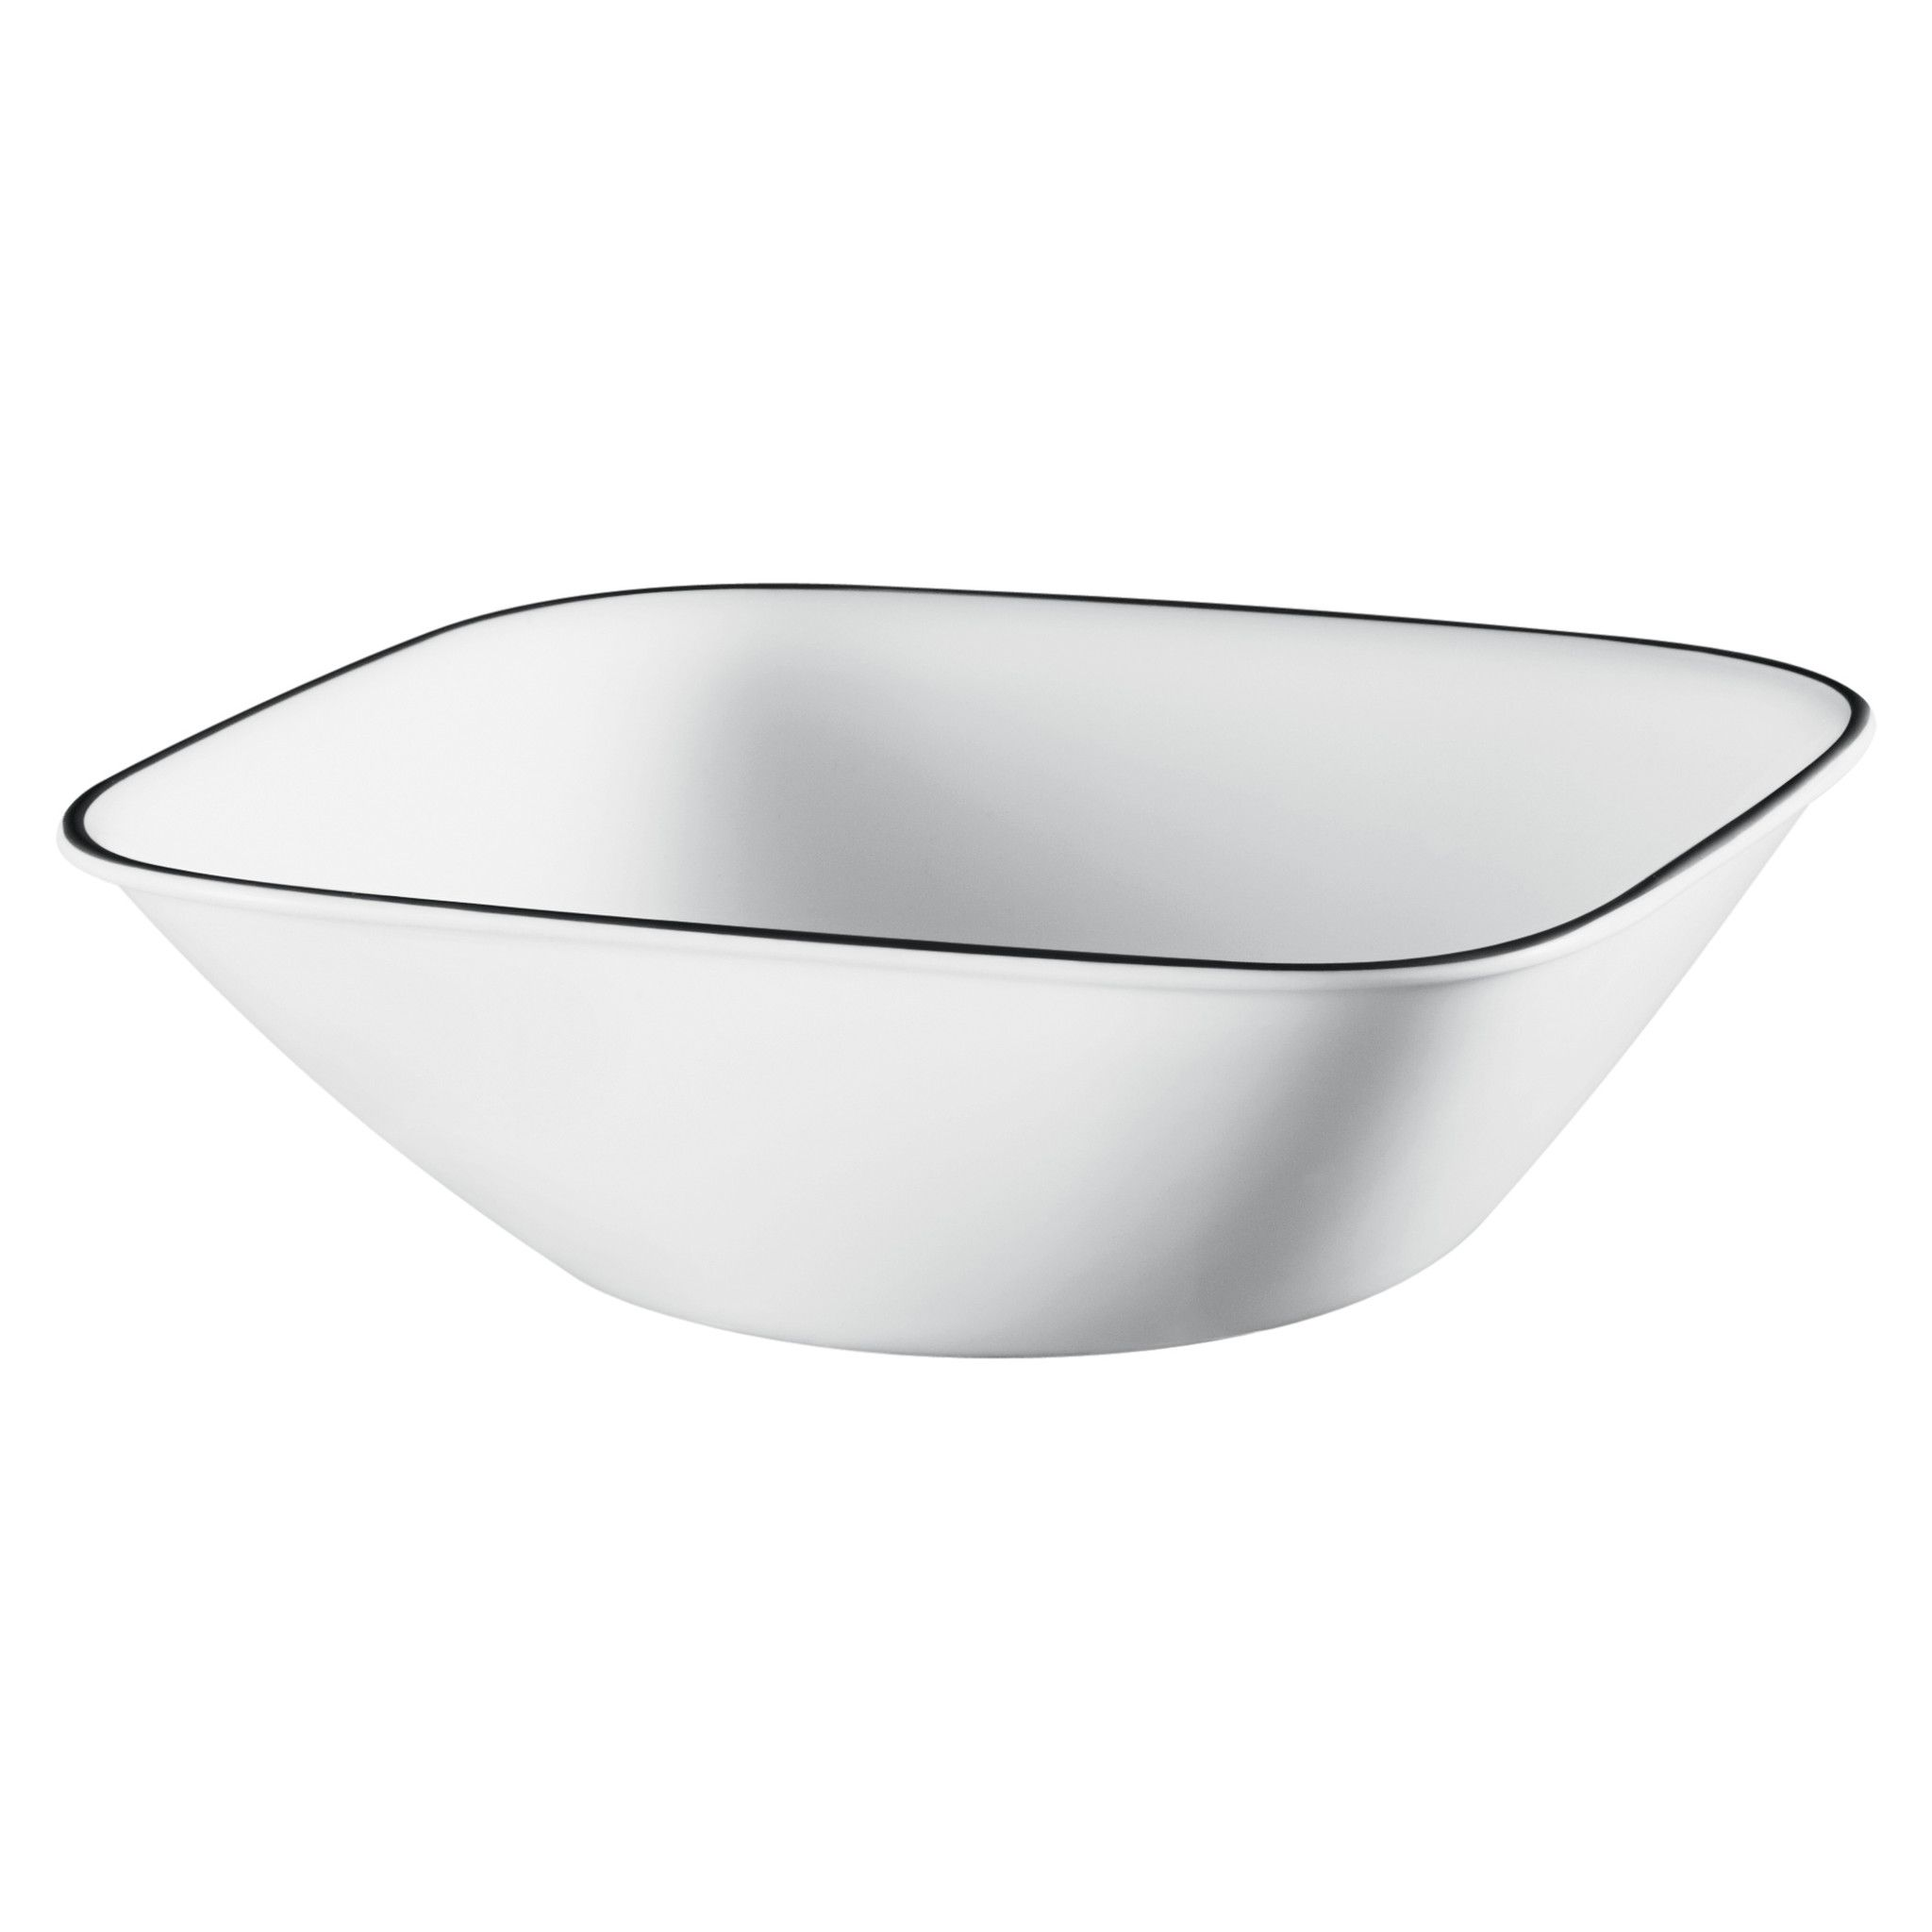 Corelle_Muret_22oz_Cereal_Bowl